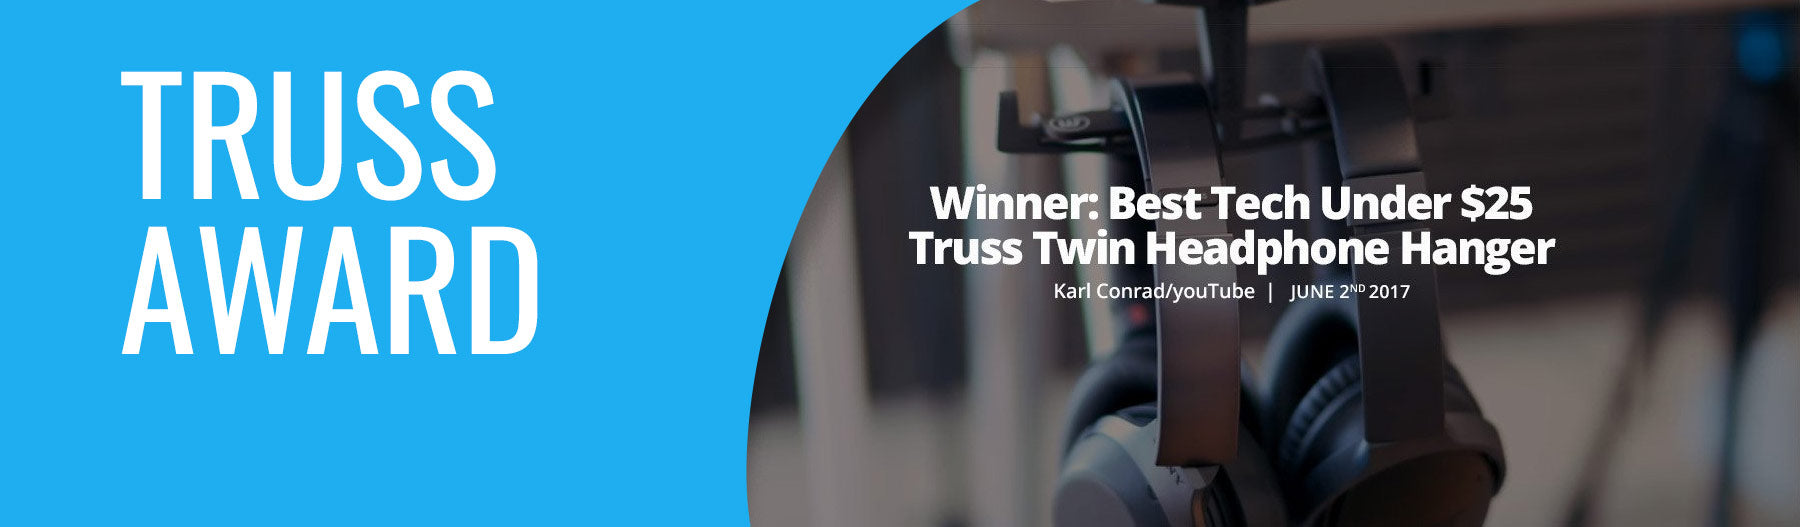 The Brainwavz Truss wins best buy award from Karl Conrad